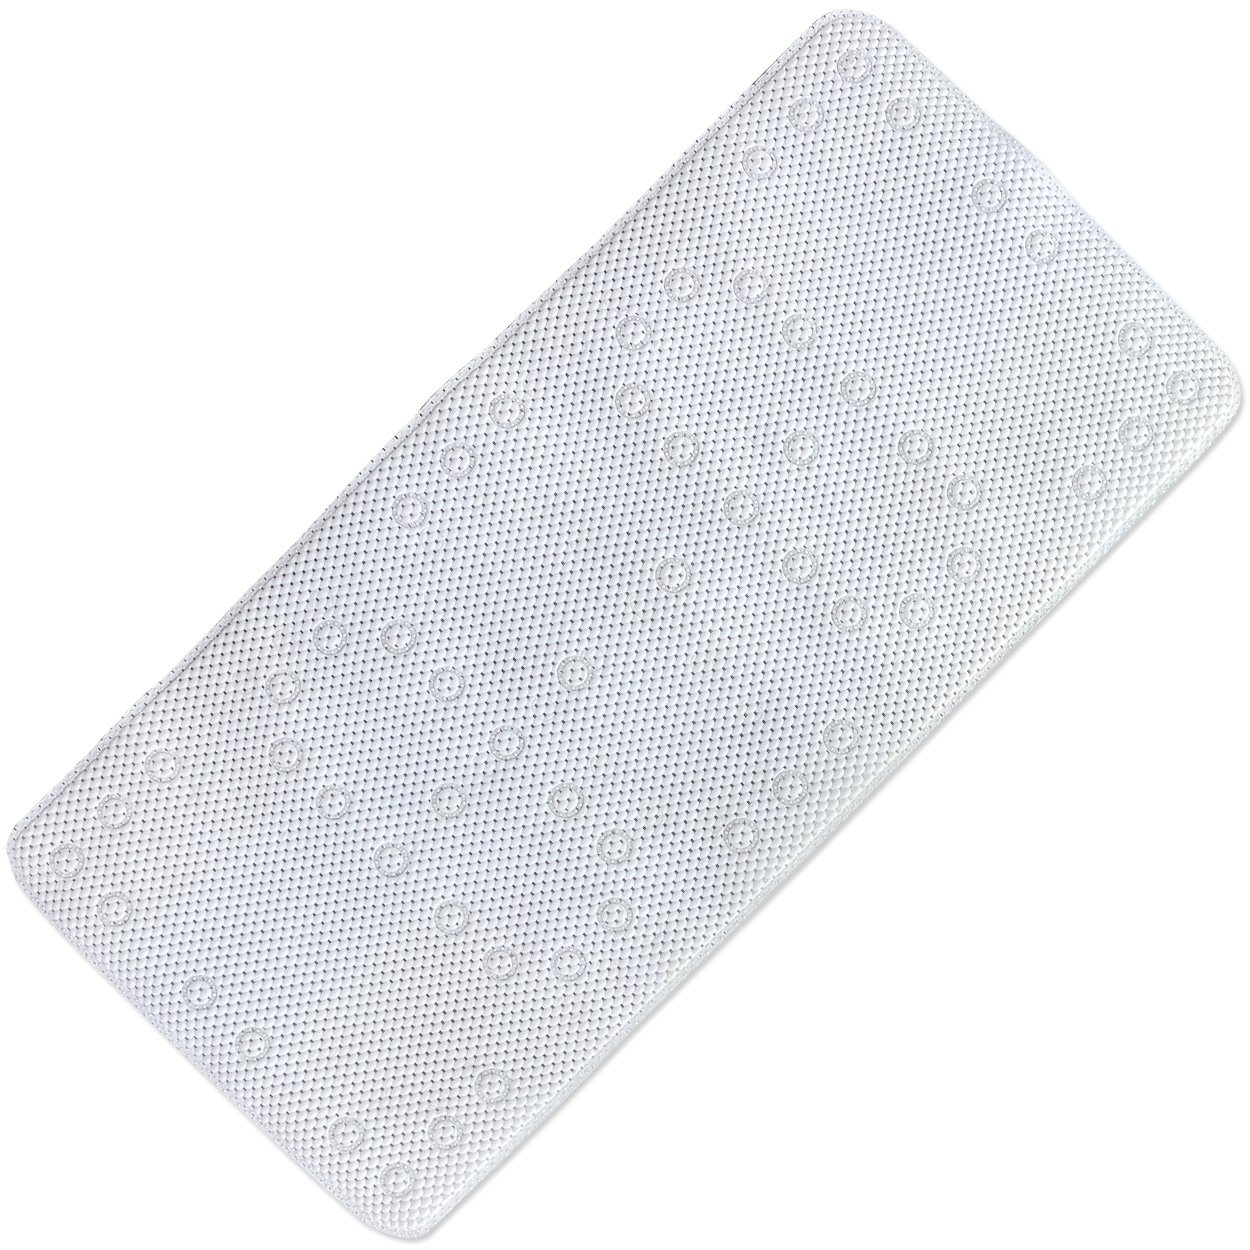 WIOR Non Slip Bathtub Mat with 58 Suction Cups PVC Foam Hollow-Out Bath Shower Mat Anti-Bacterial Mildew Resistant Bathmat for Bathroom Hotels Spas